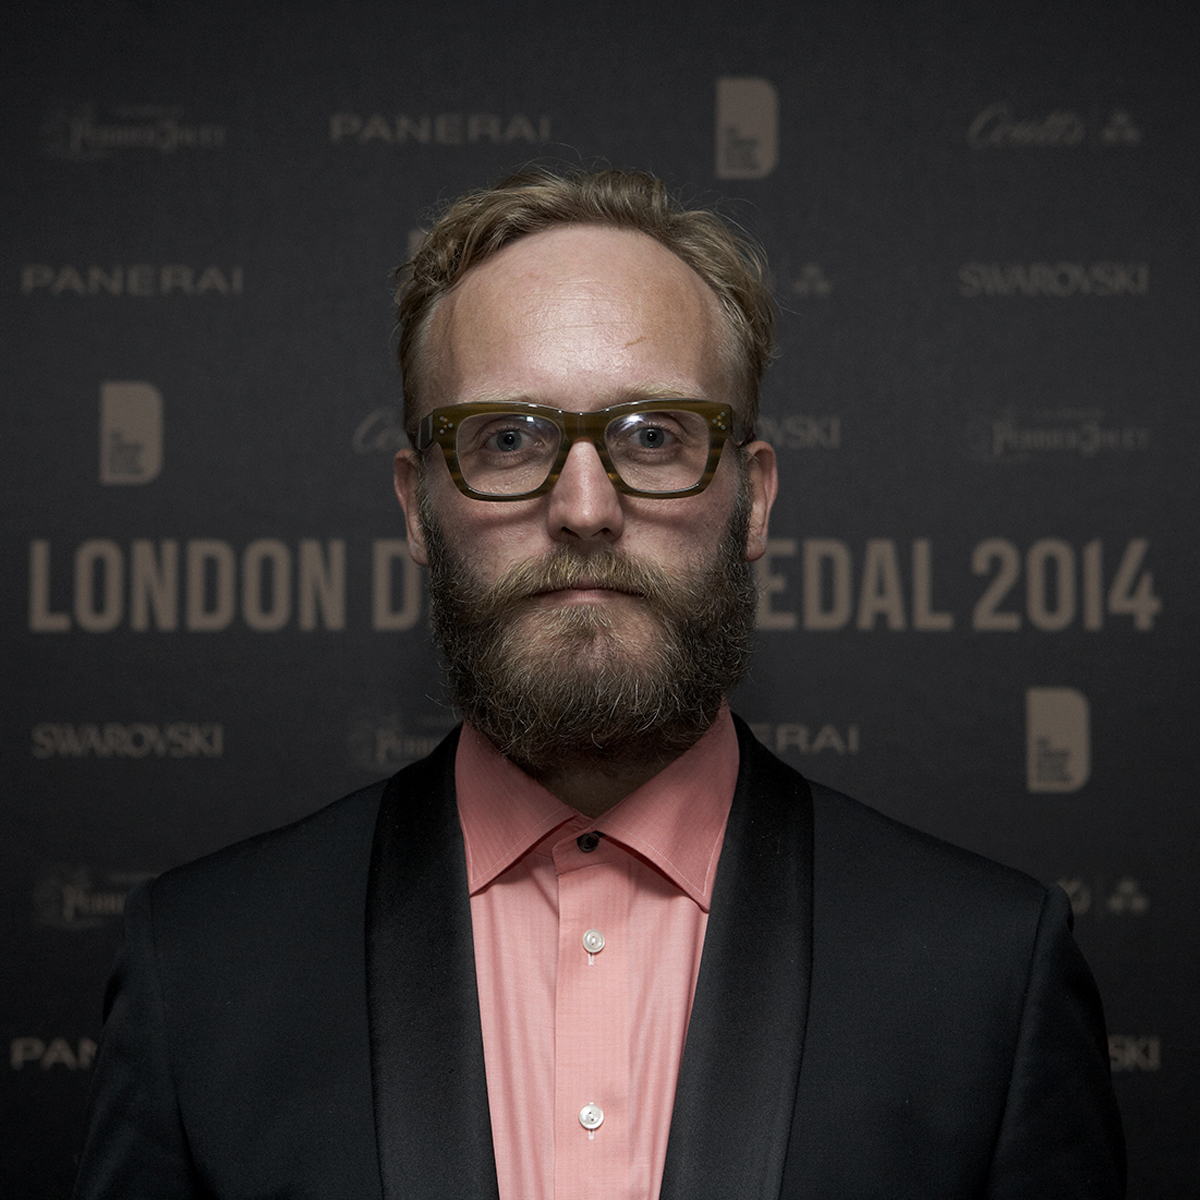 Nicolas Roope, founder and creative director, Poke